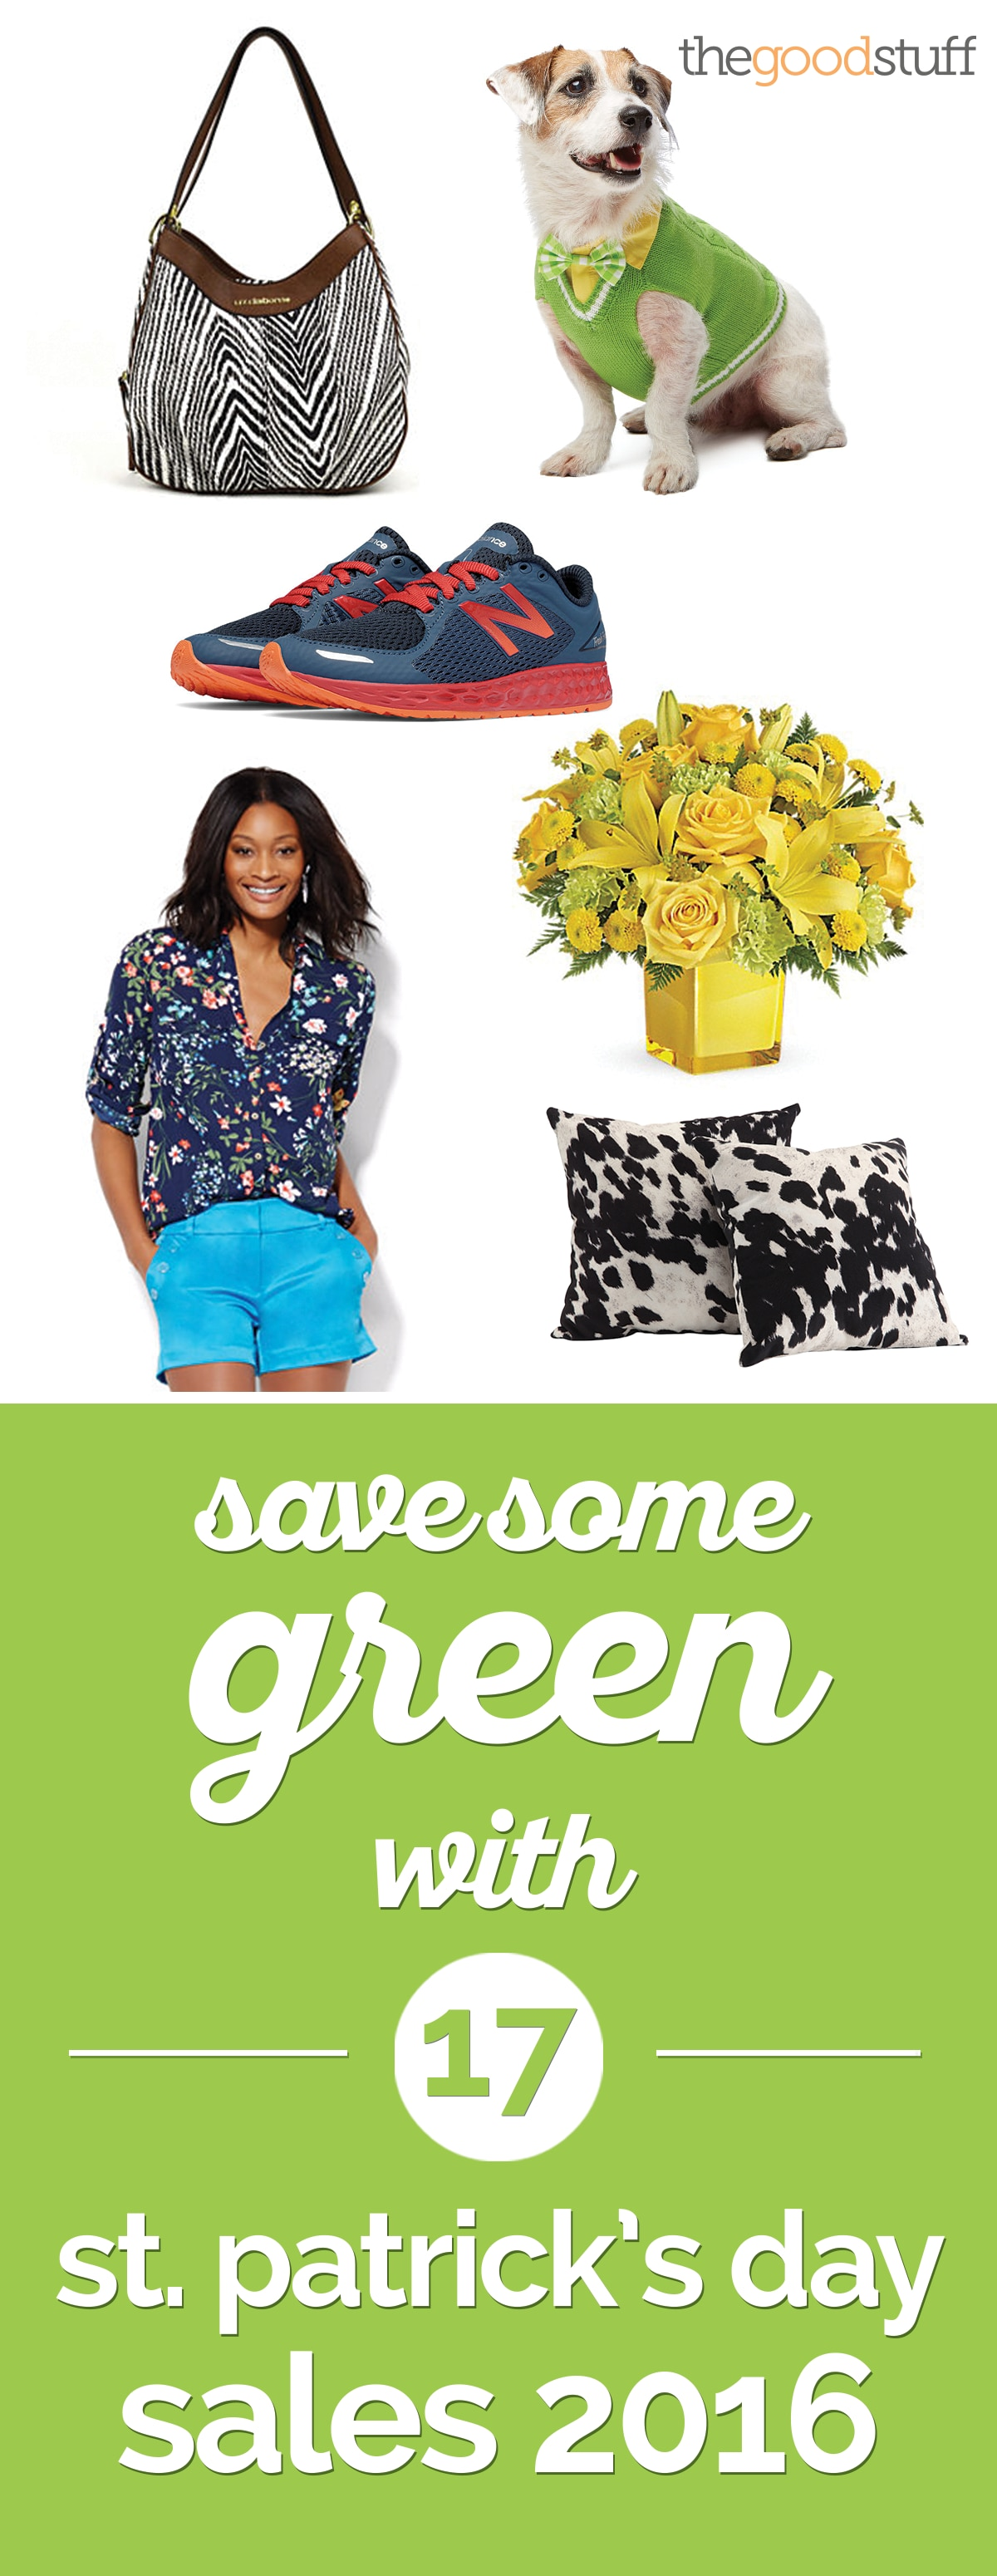 Save Some Green With 15+ St. Patrick's Day Sales 2016 | thegoodstuff